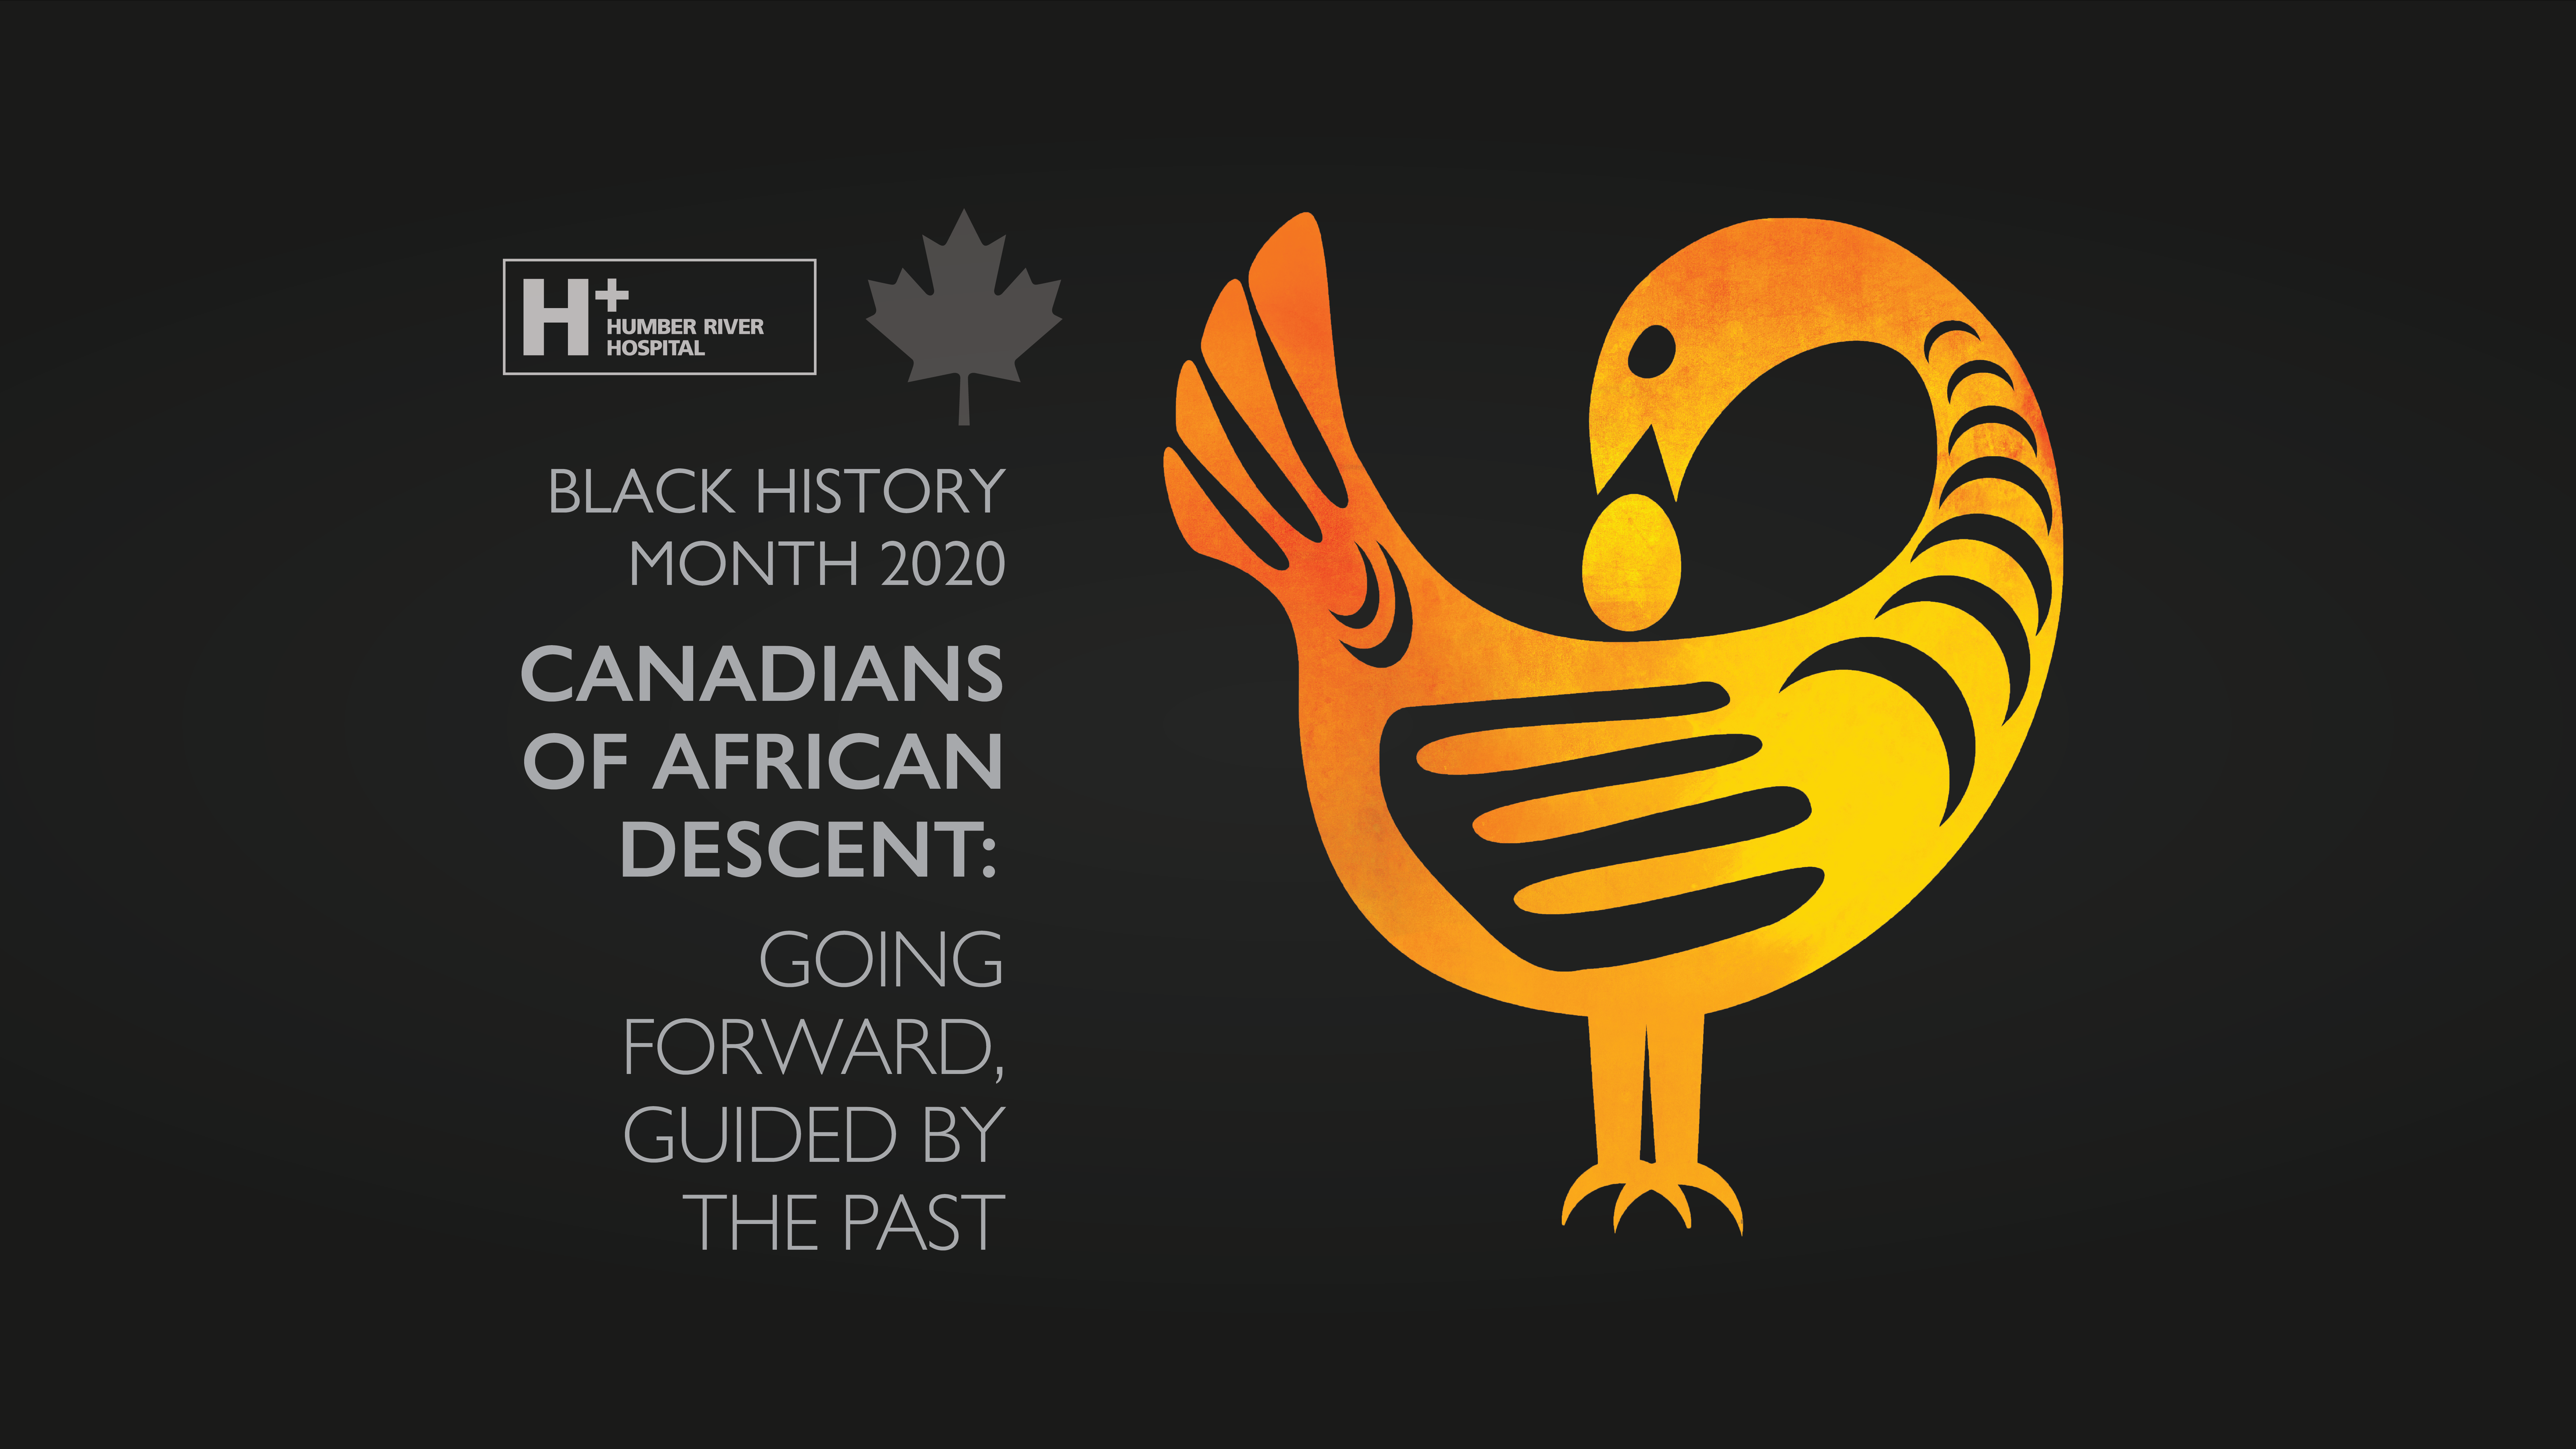 Black History Month 2020. Canadians of African Descent: Going Forward, Guided by the Past